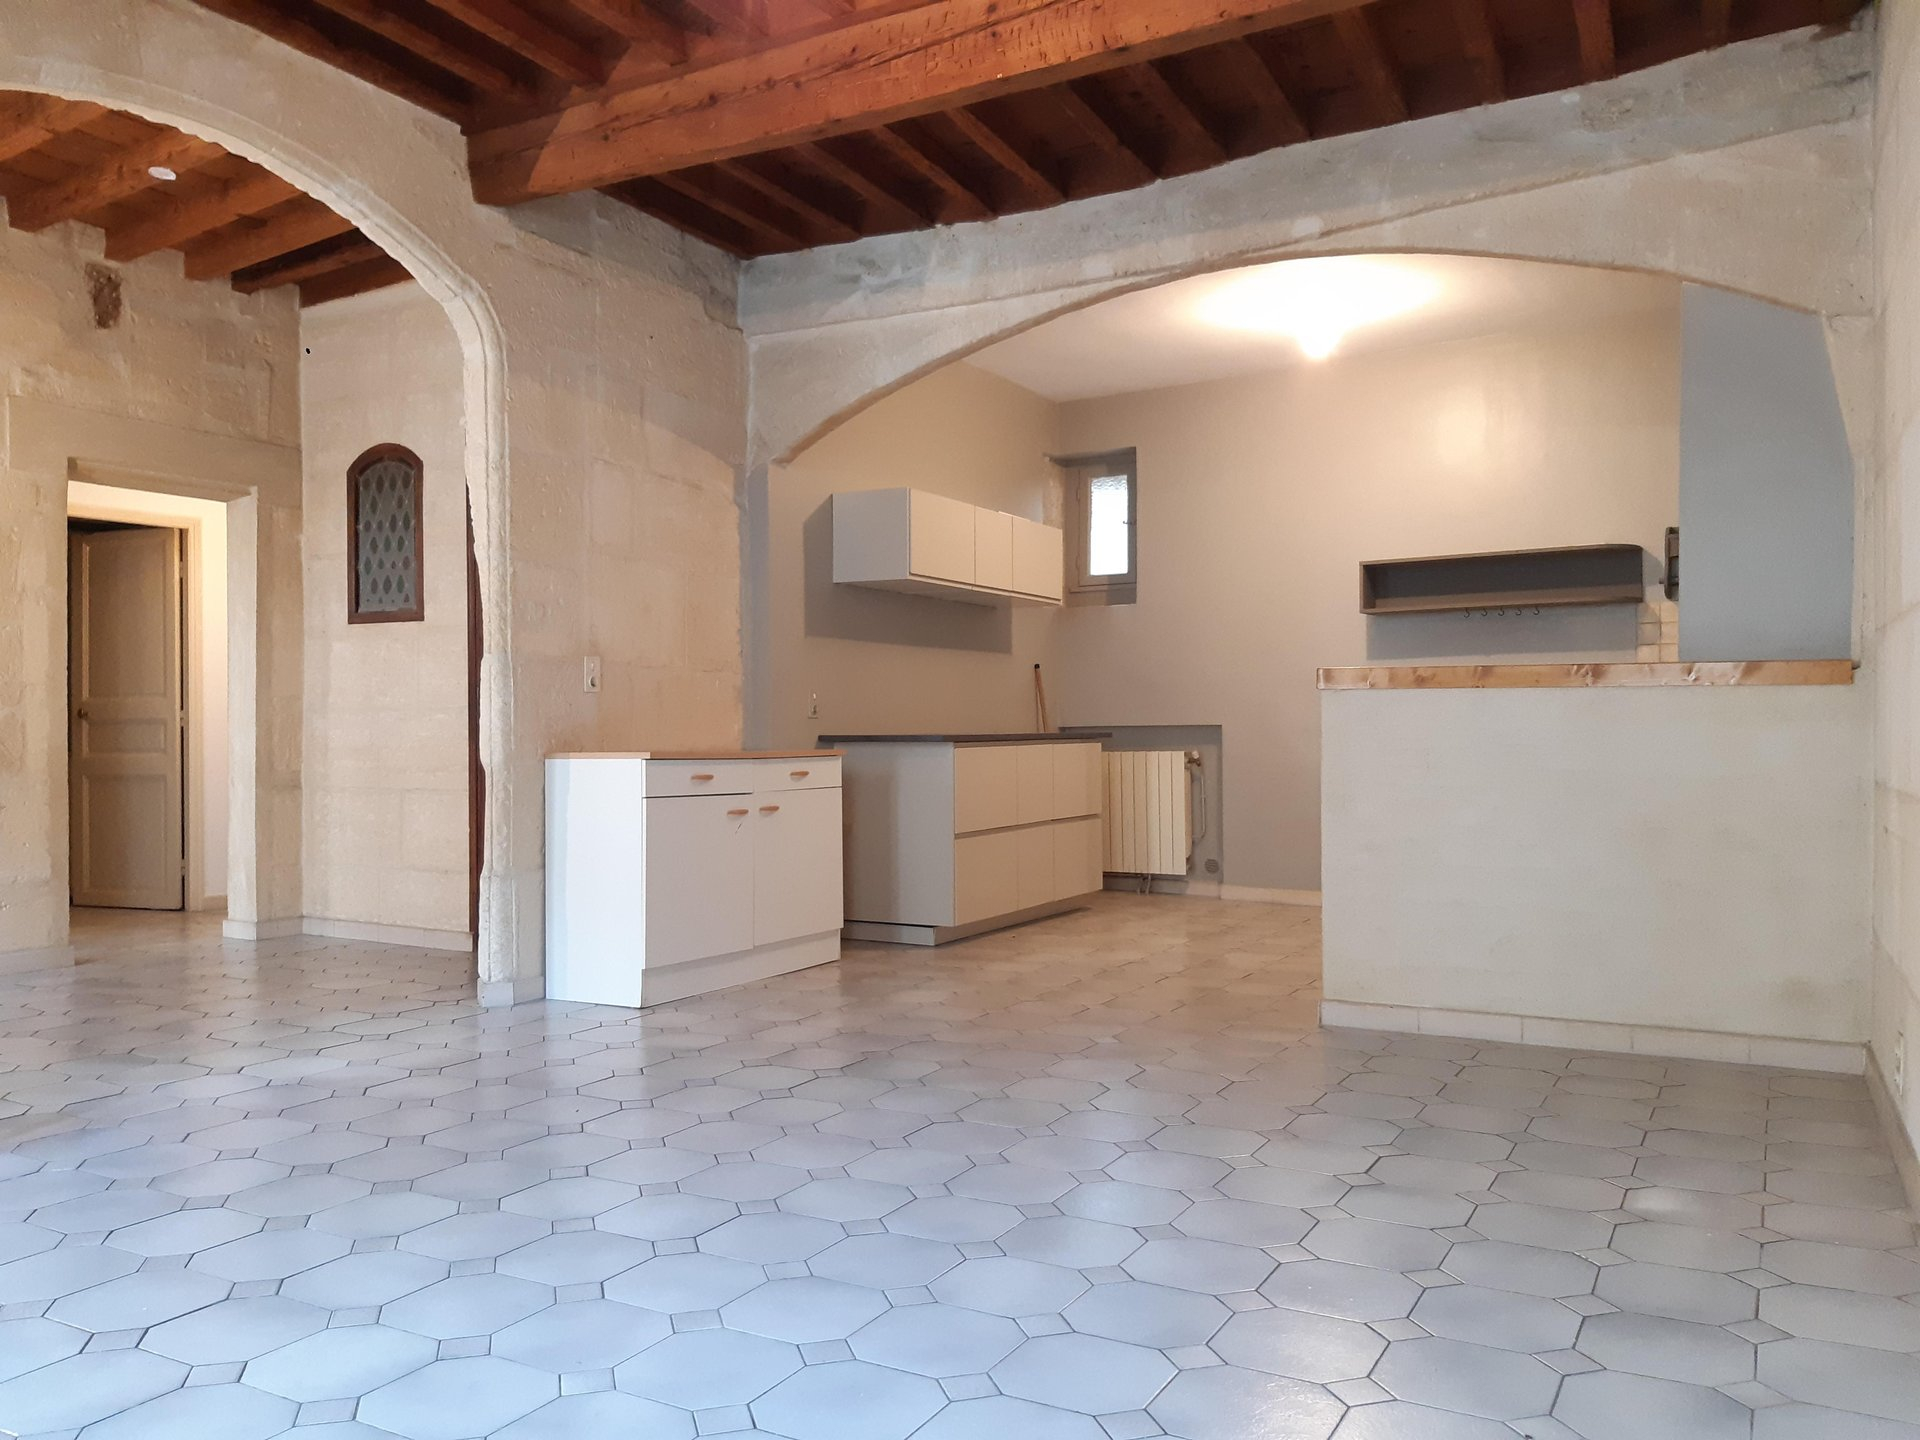 Location Appartement TARASCON Mandat : 0059